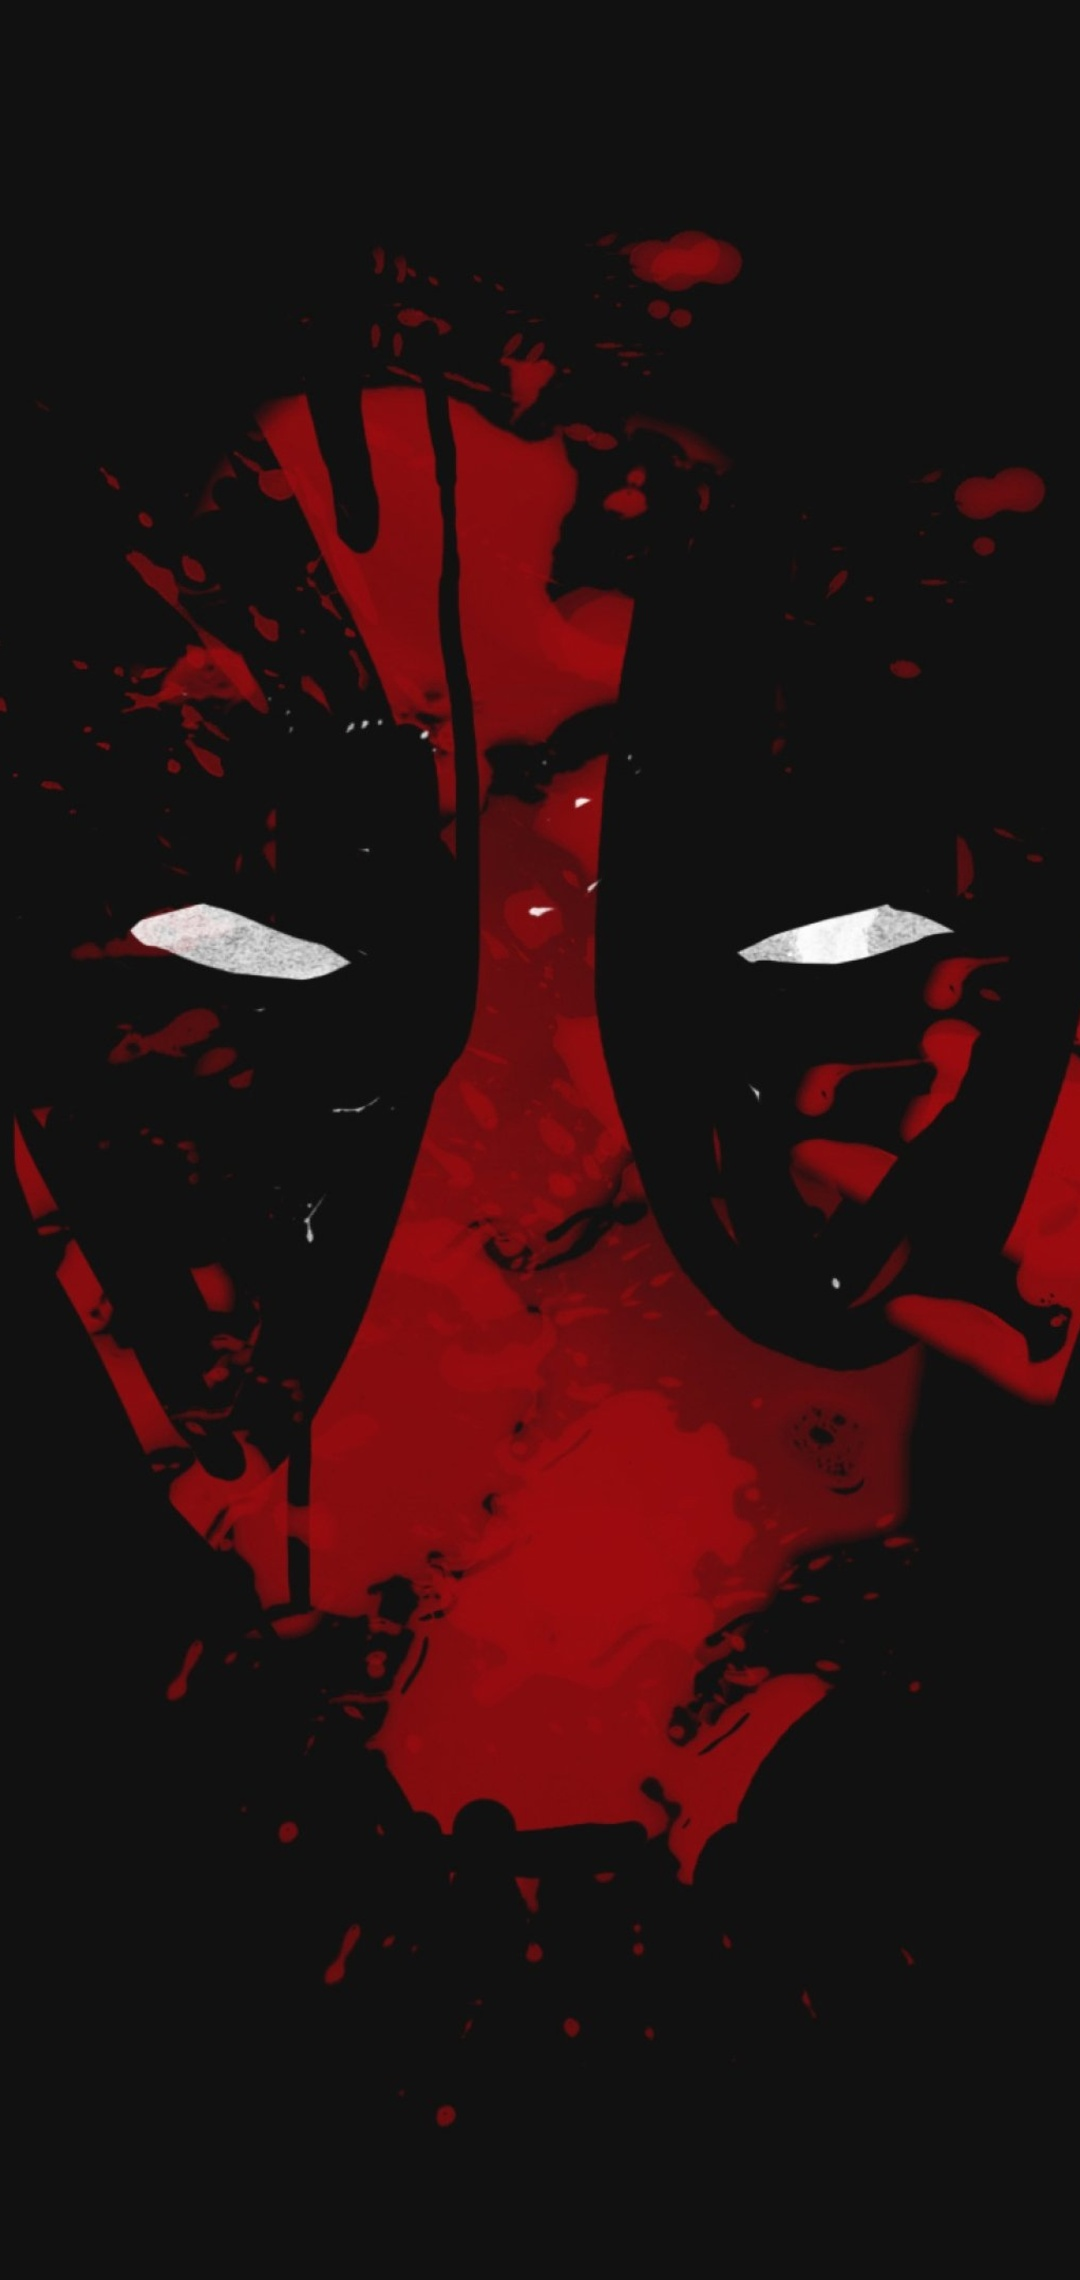 deadpool-abstract-4k-80.jpg